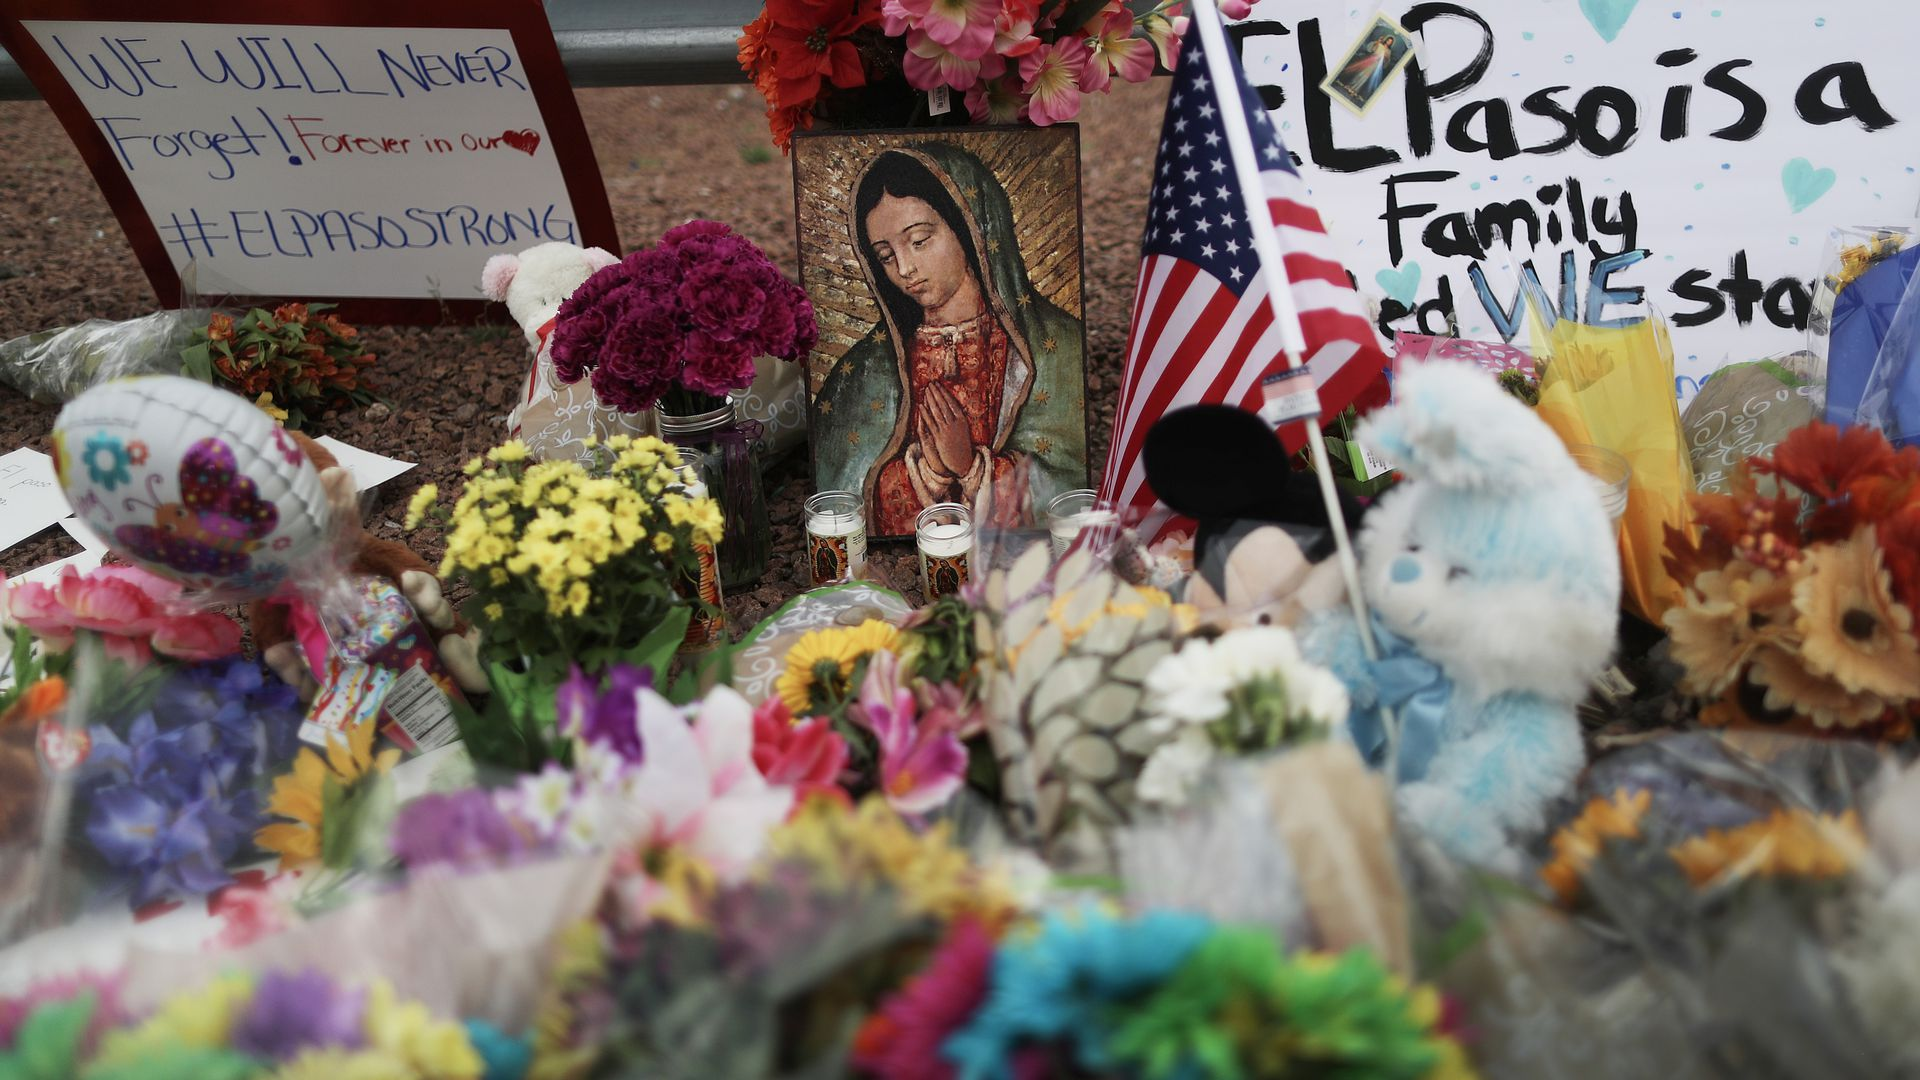 Flowers and mementos are seen at a makeshift memorial outside Walmart, near the scene of a mass shooting which left at least 20 people dead, on August 4, 2019 in El Paso